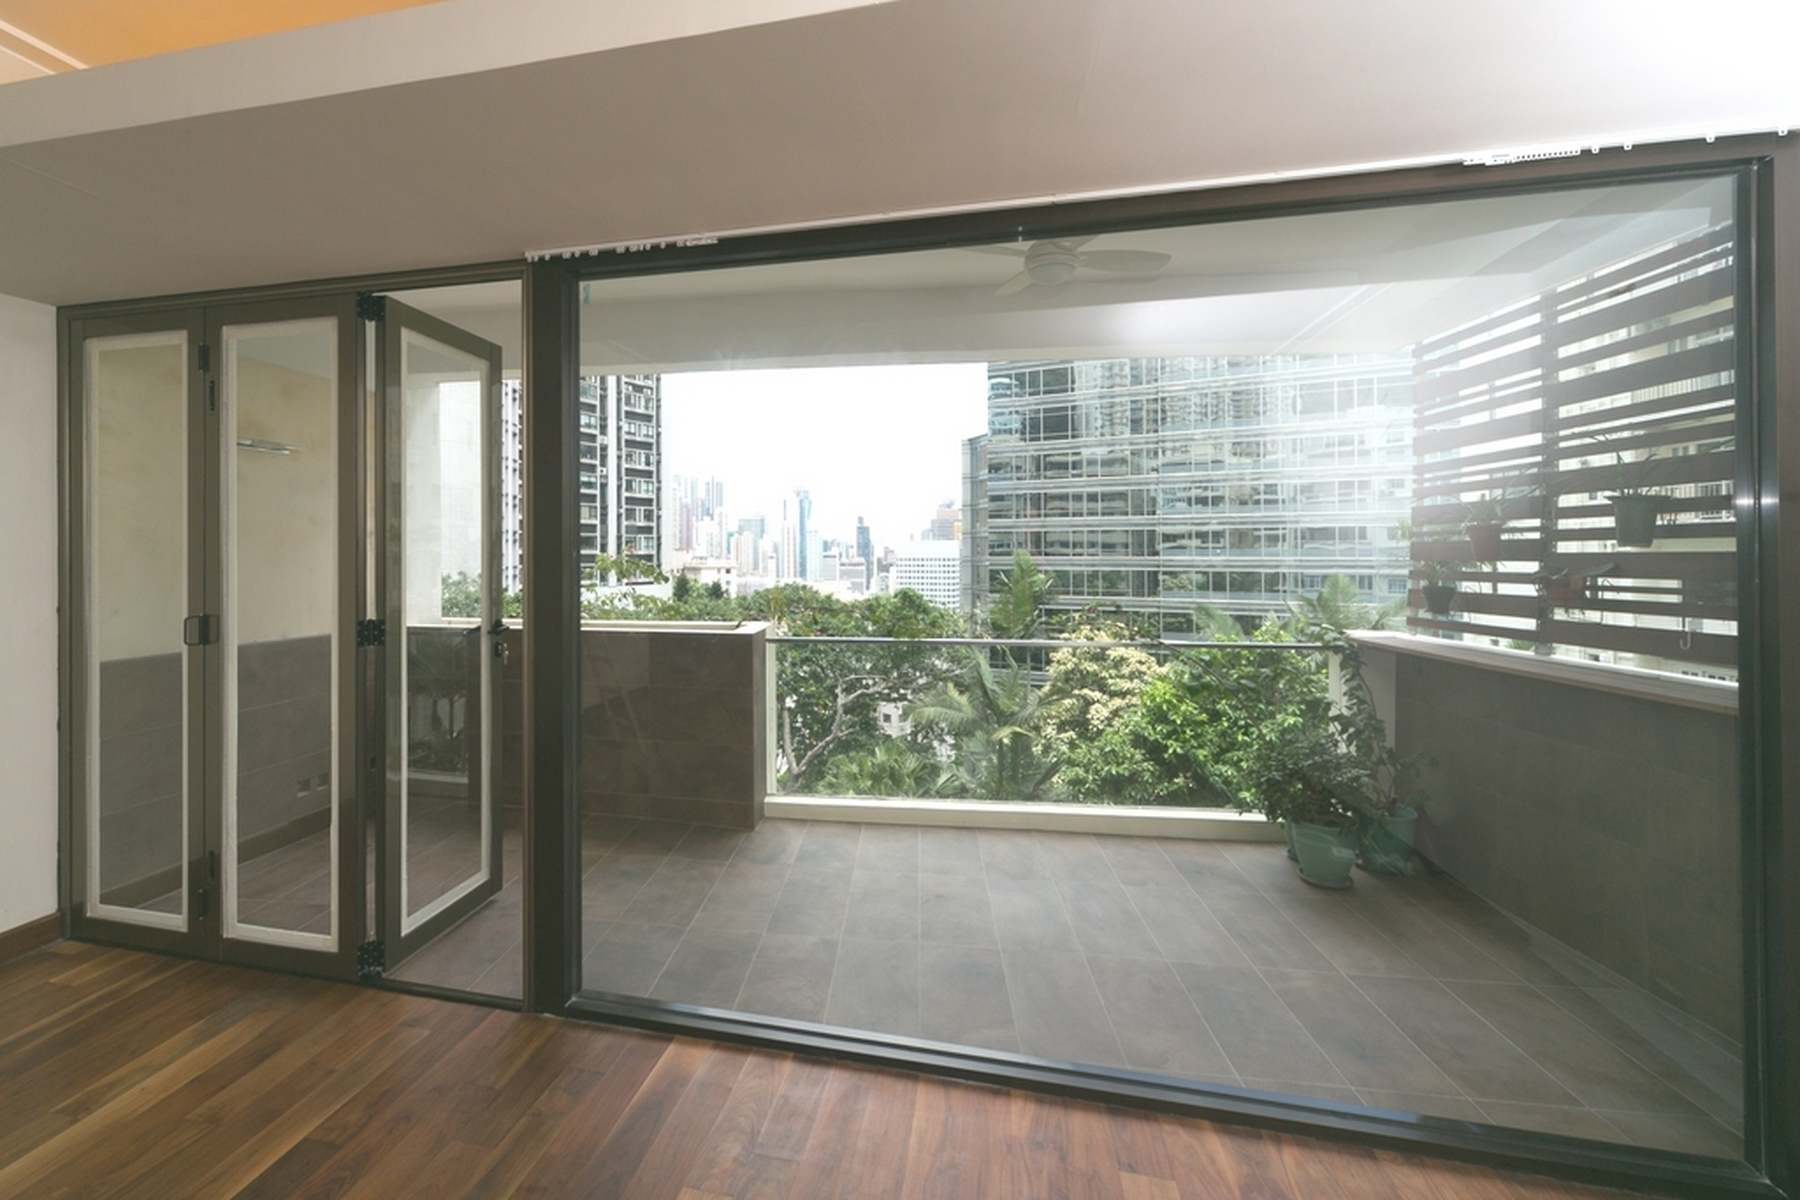 106 - 108, Macdonnell Road